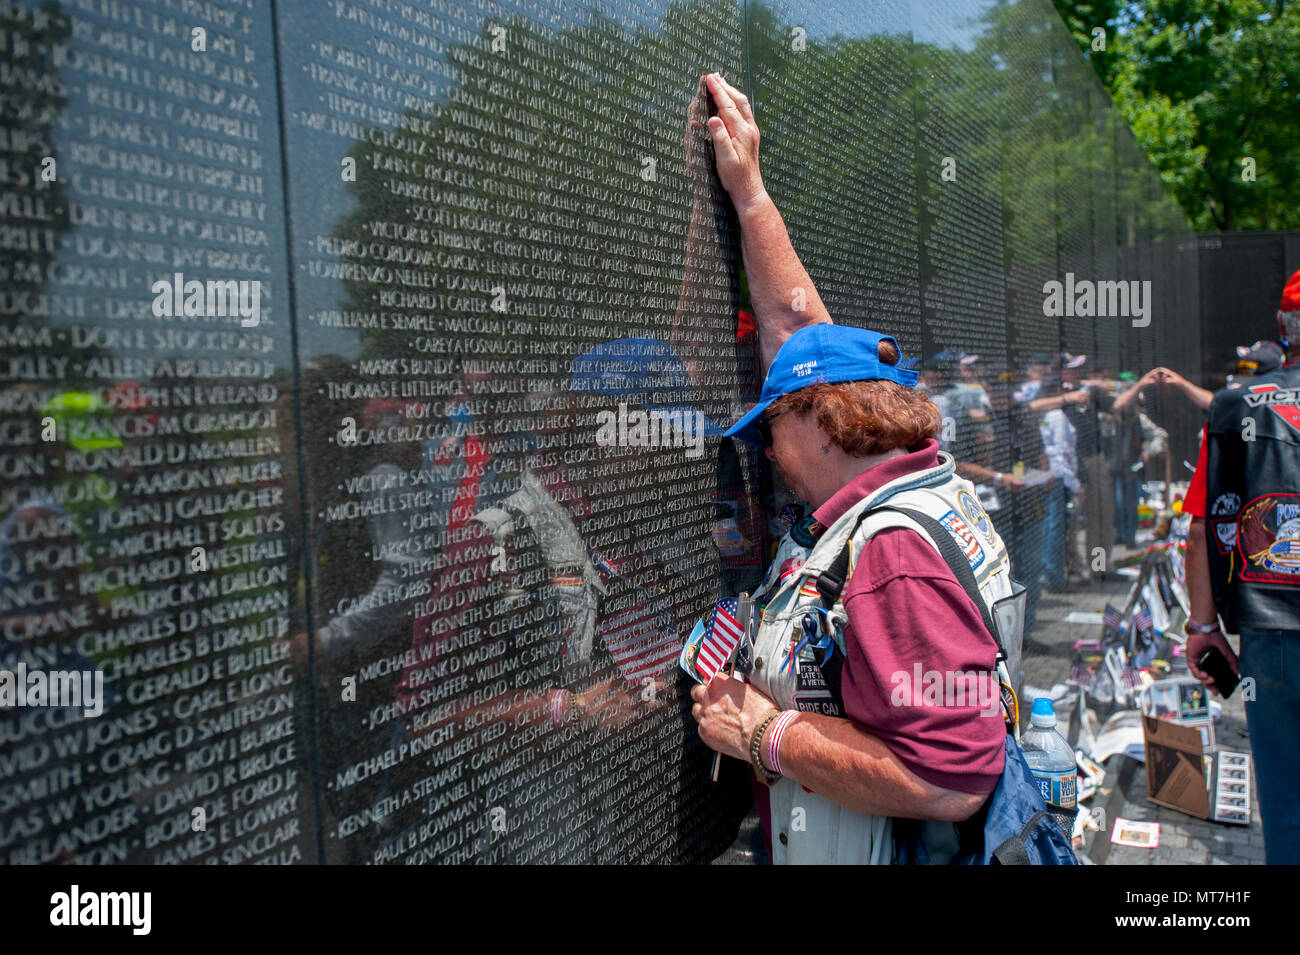 USA Washington DC Vietnam War Memorial Wall People come to grieve and remember loved ones and bring items to honor them - Stock Image